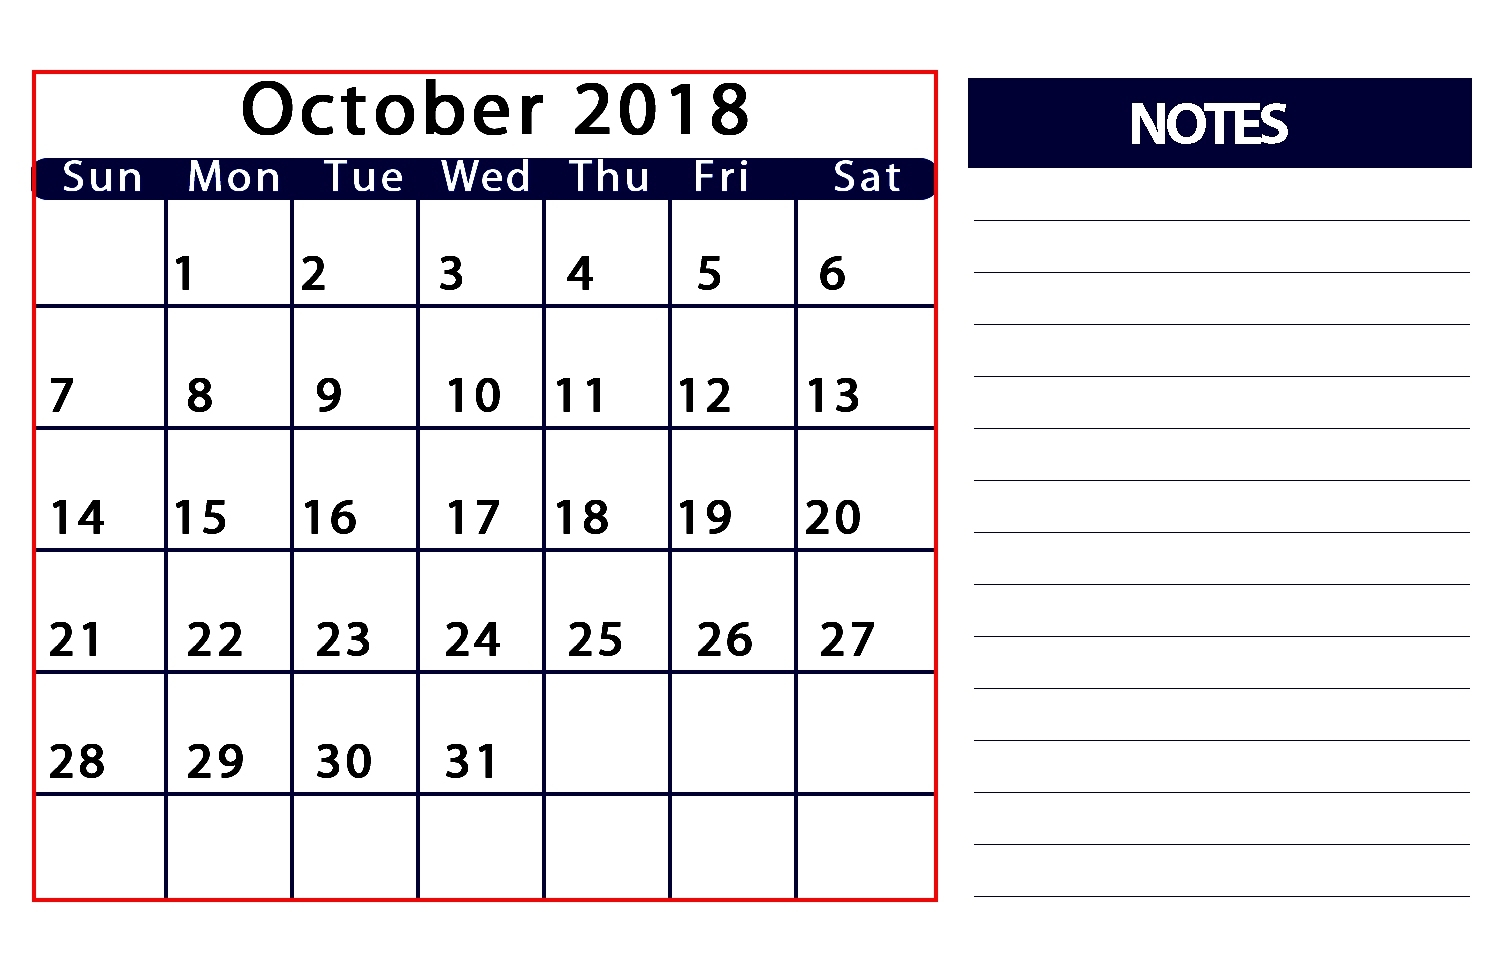 october 2018 calendar with notes calendar printable with holidays October 2018 Calendar with Notes erdferdf